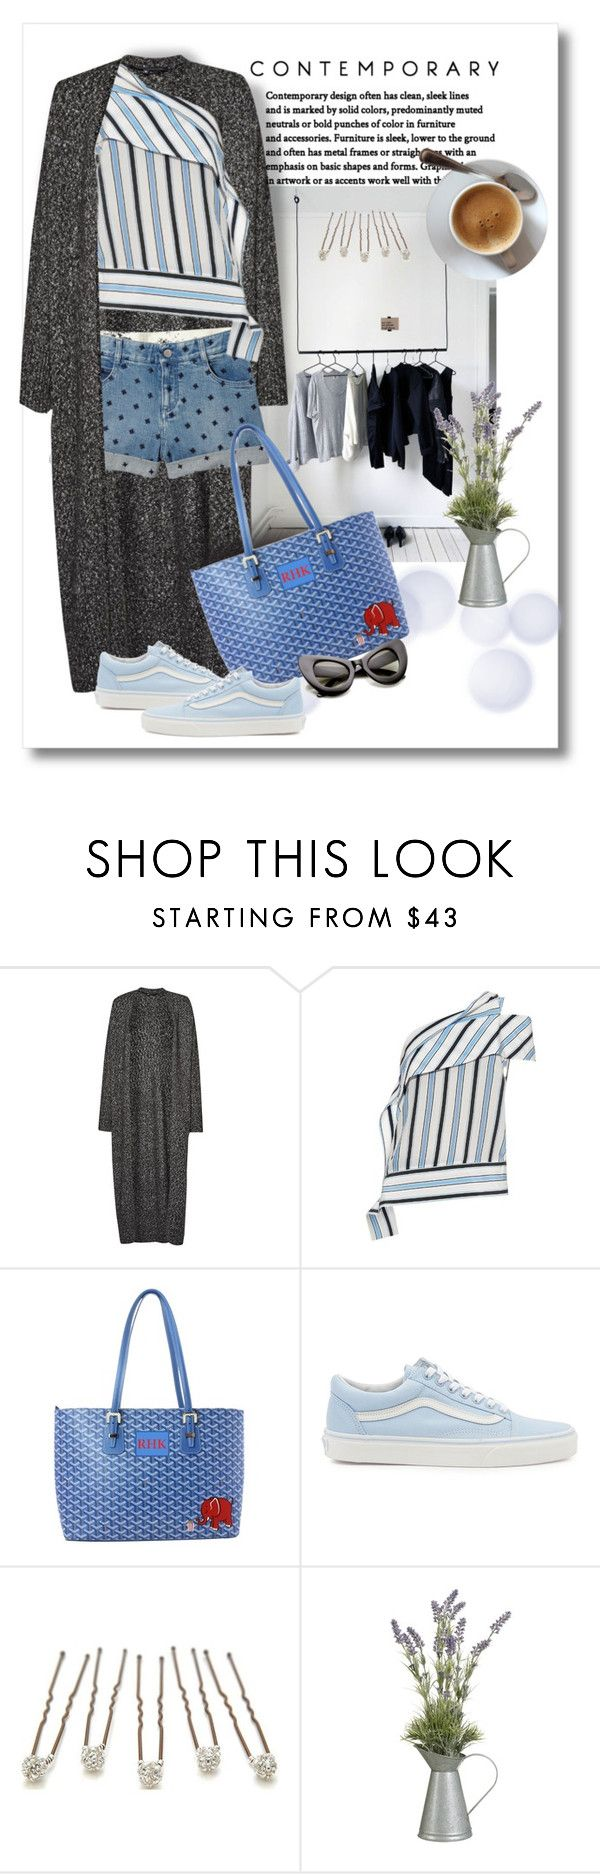 """Denim Shorts"" by mellapr ❤ liked on Polyvore featuring French Connection, STELLA McCARTNEY, MSGM, Trilogy, Goyard, Vans and John Lewis"